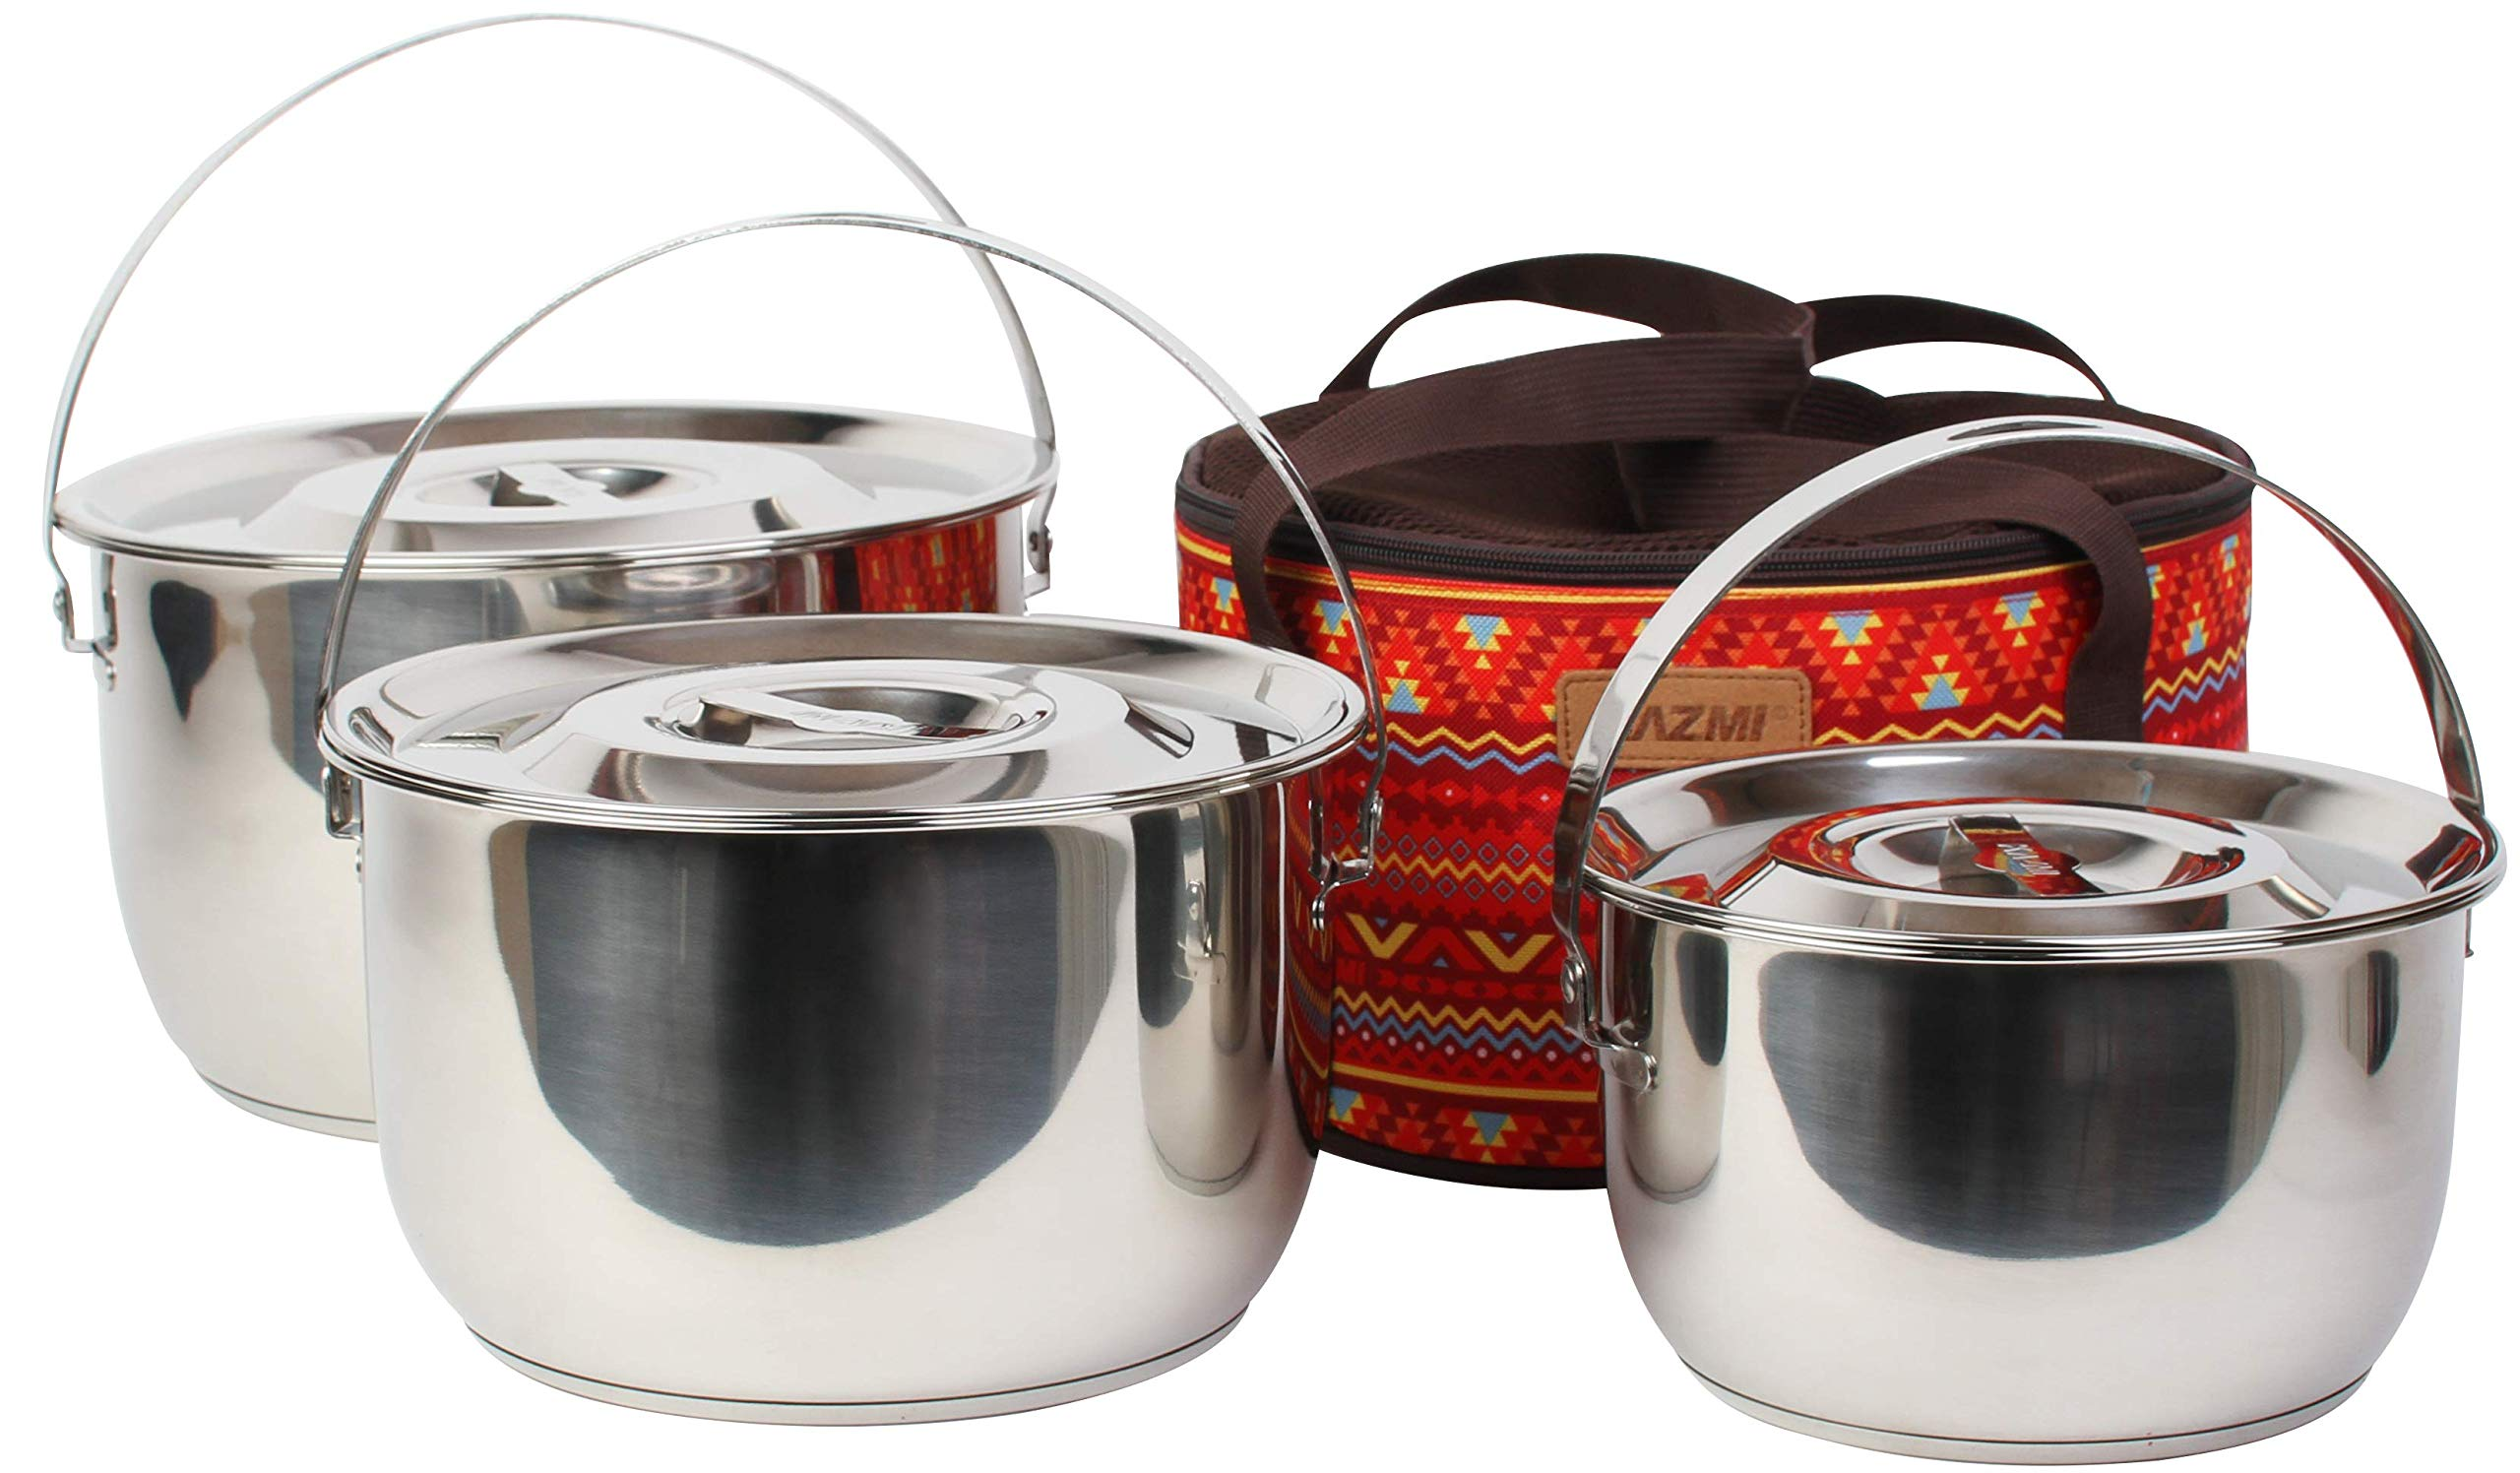 Kazmi Hera Stencook Kocher Set (Large) - Camping Gear and Cookware Set | Three Piece Stainless Steel Survival Gear Pots and Pans | Hiking, Backpacking, Travel, Outdoor Cooking | Camping Accessories by Camp Solutions